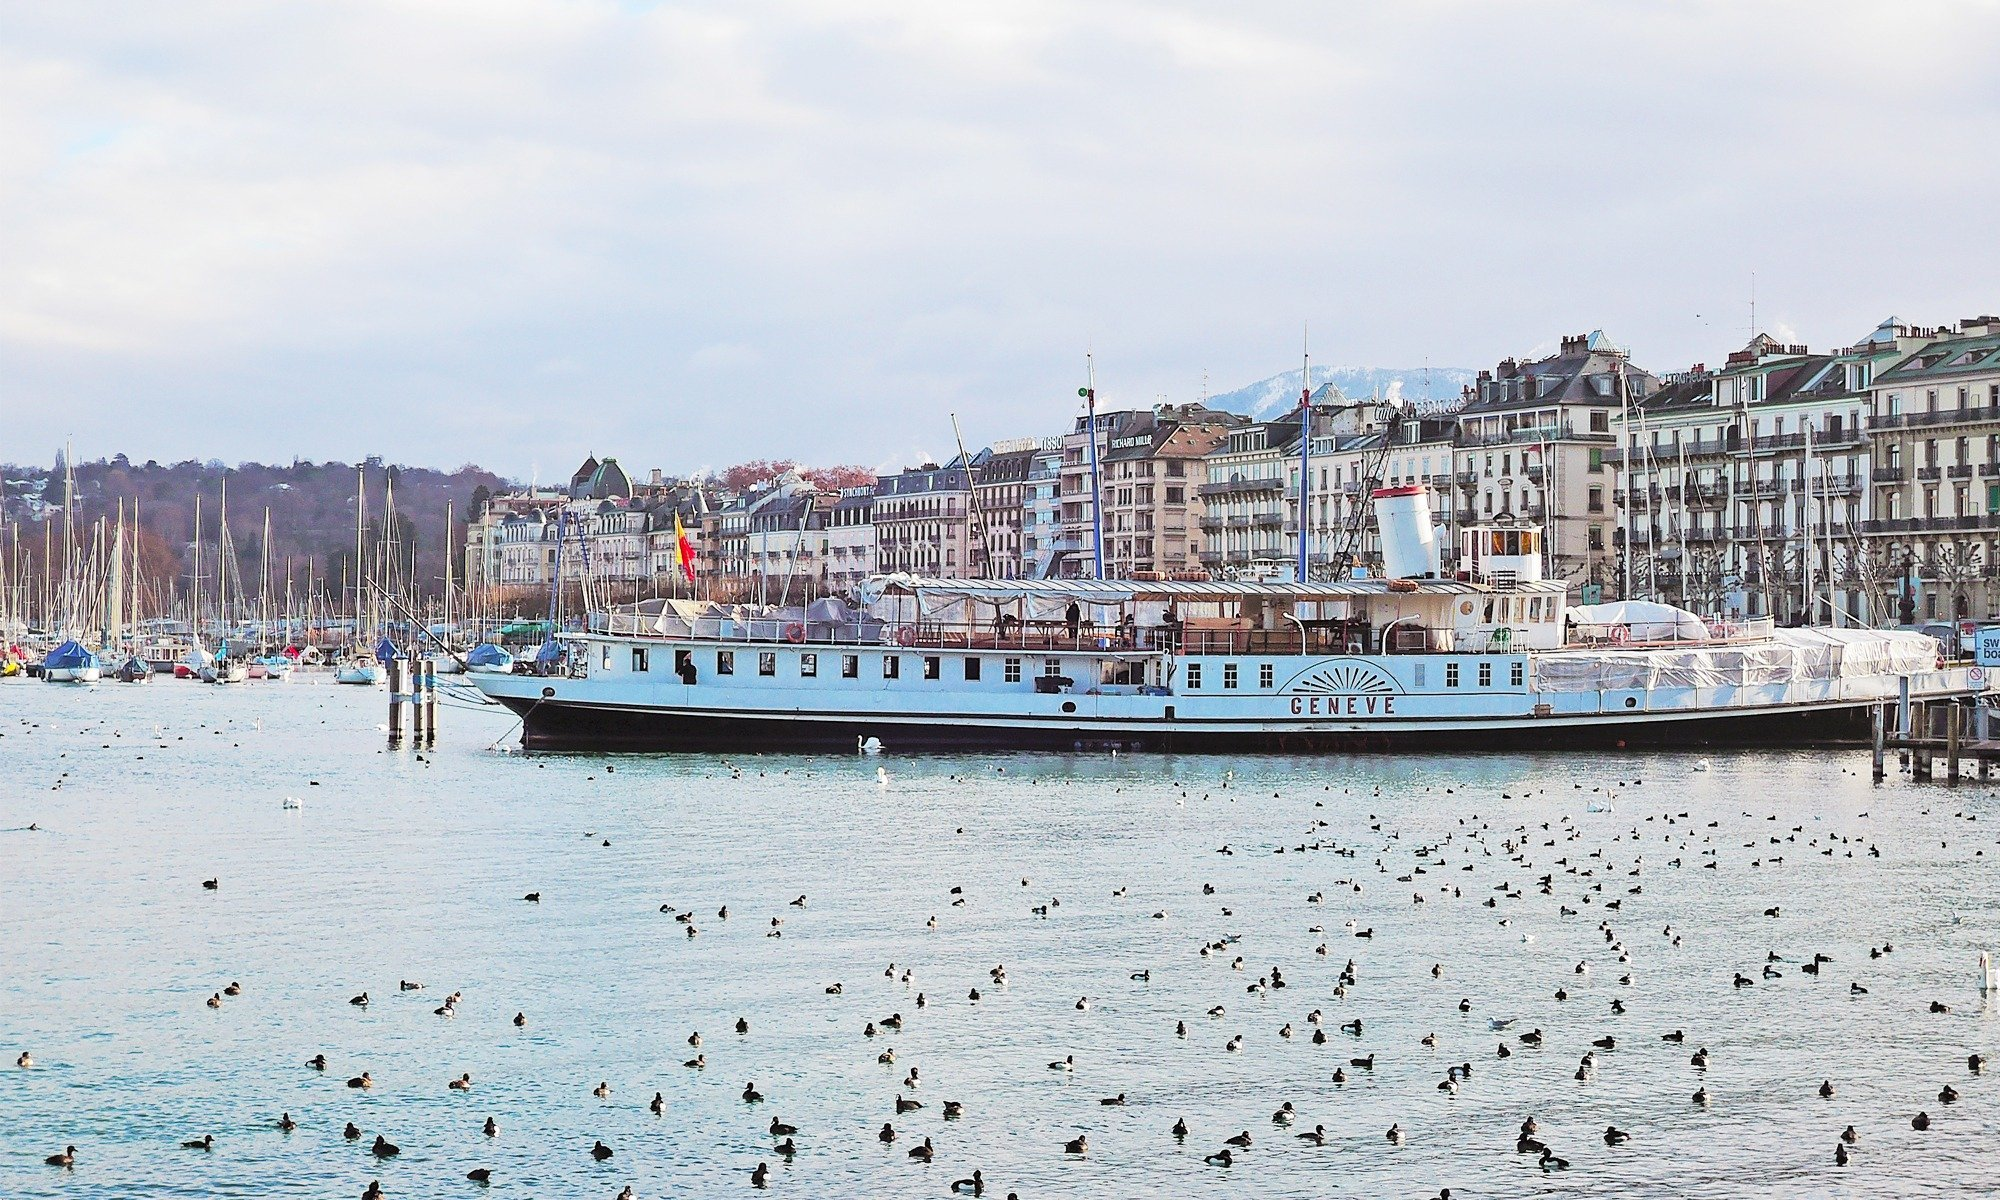 Spend 3 days in Geneva and explore the city's beautiful old town, cosmopolitan city center, and peaceful green spaces. The city is also a perfect base for exploring Switzerland's beautiful countryside. Here's your essential travel guide to little holidays in Geneva.